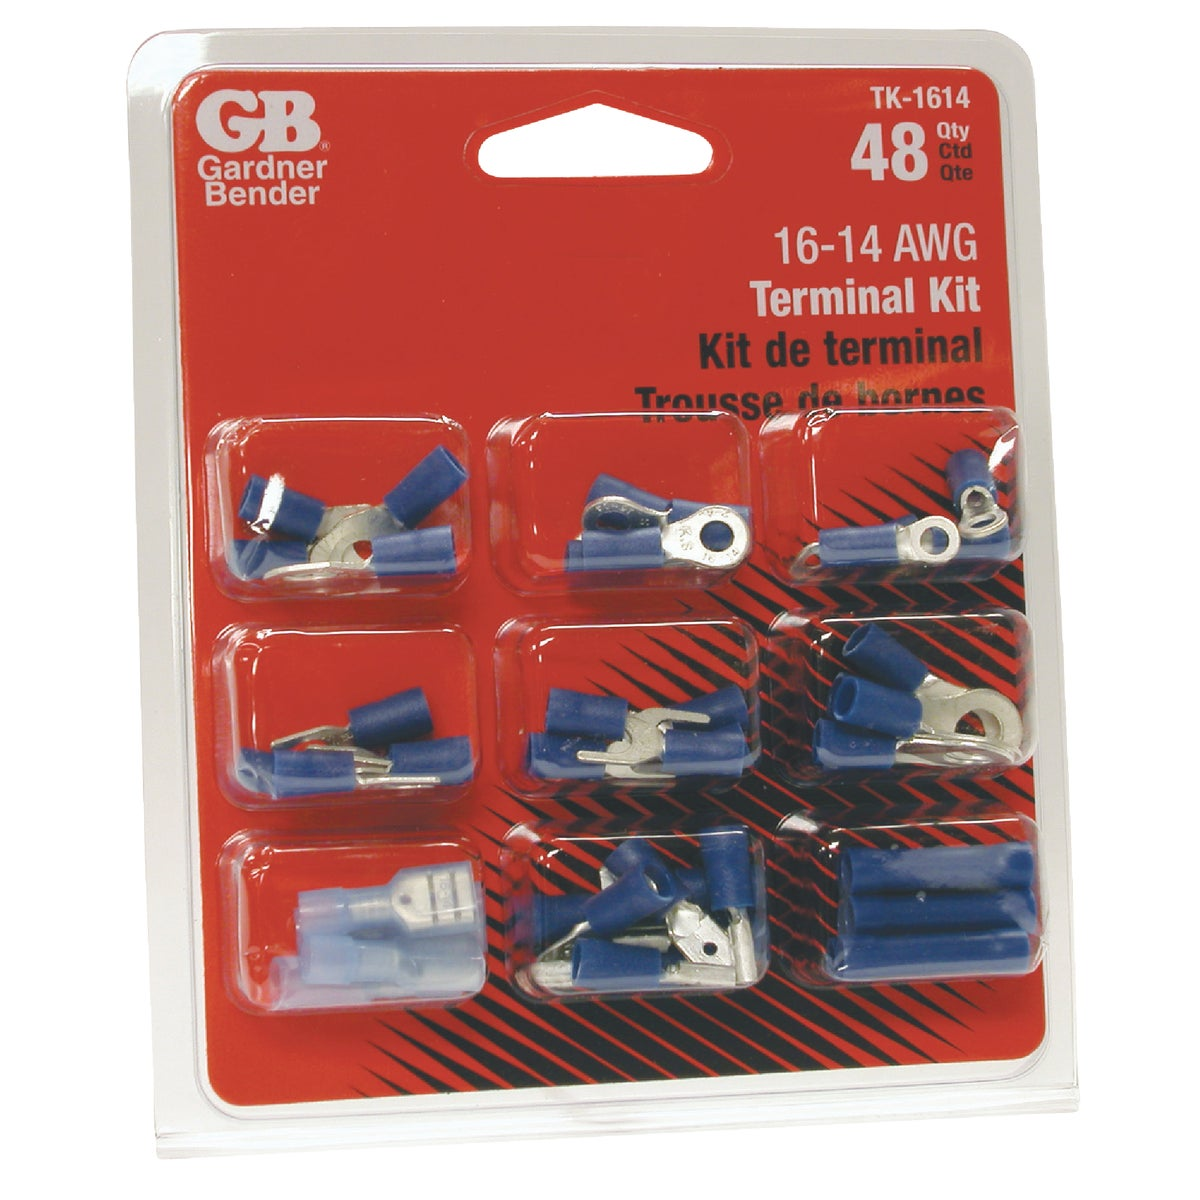 14-16 AWG TERMINAL KIT - TK-1614 by G B Electrical Inc